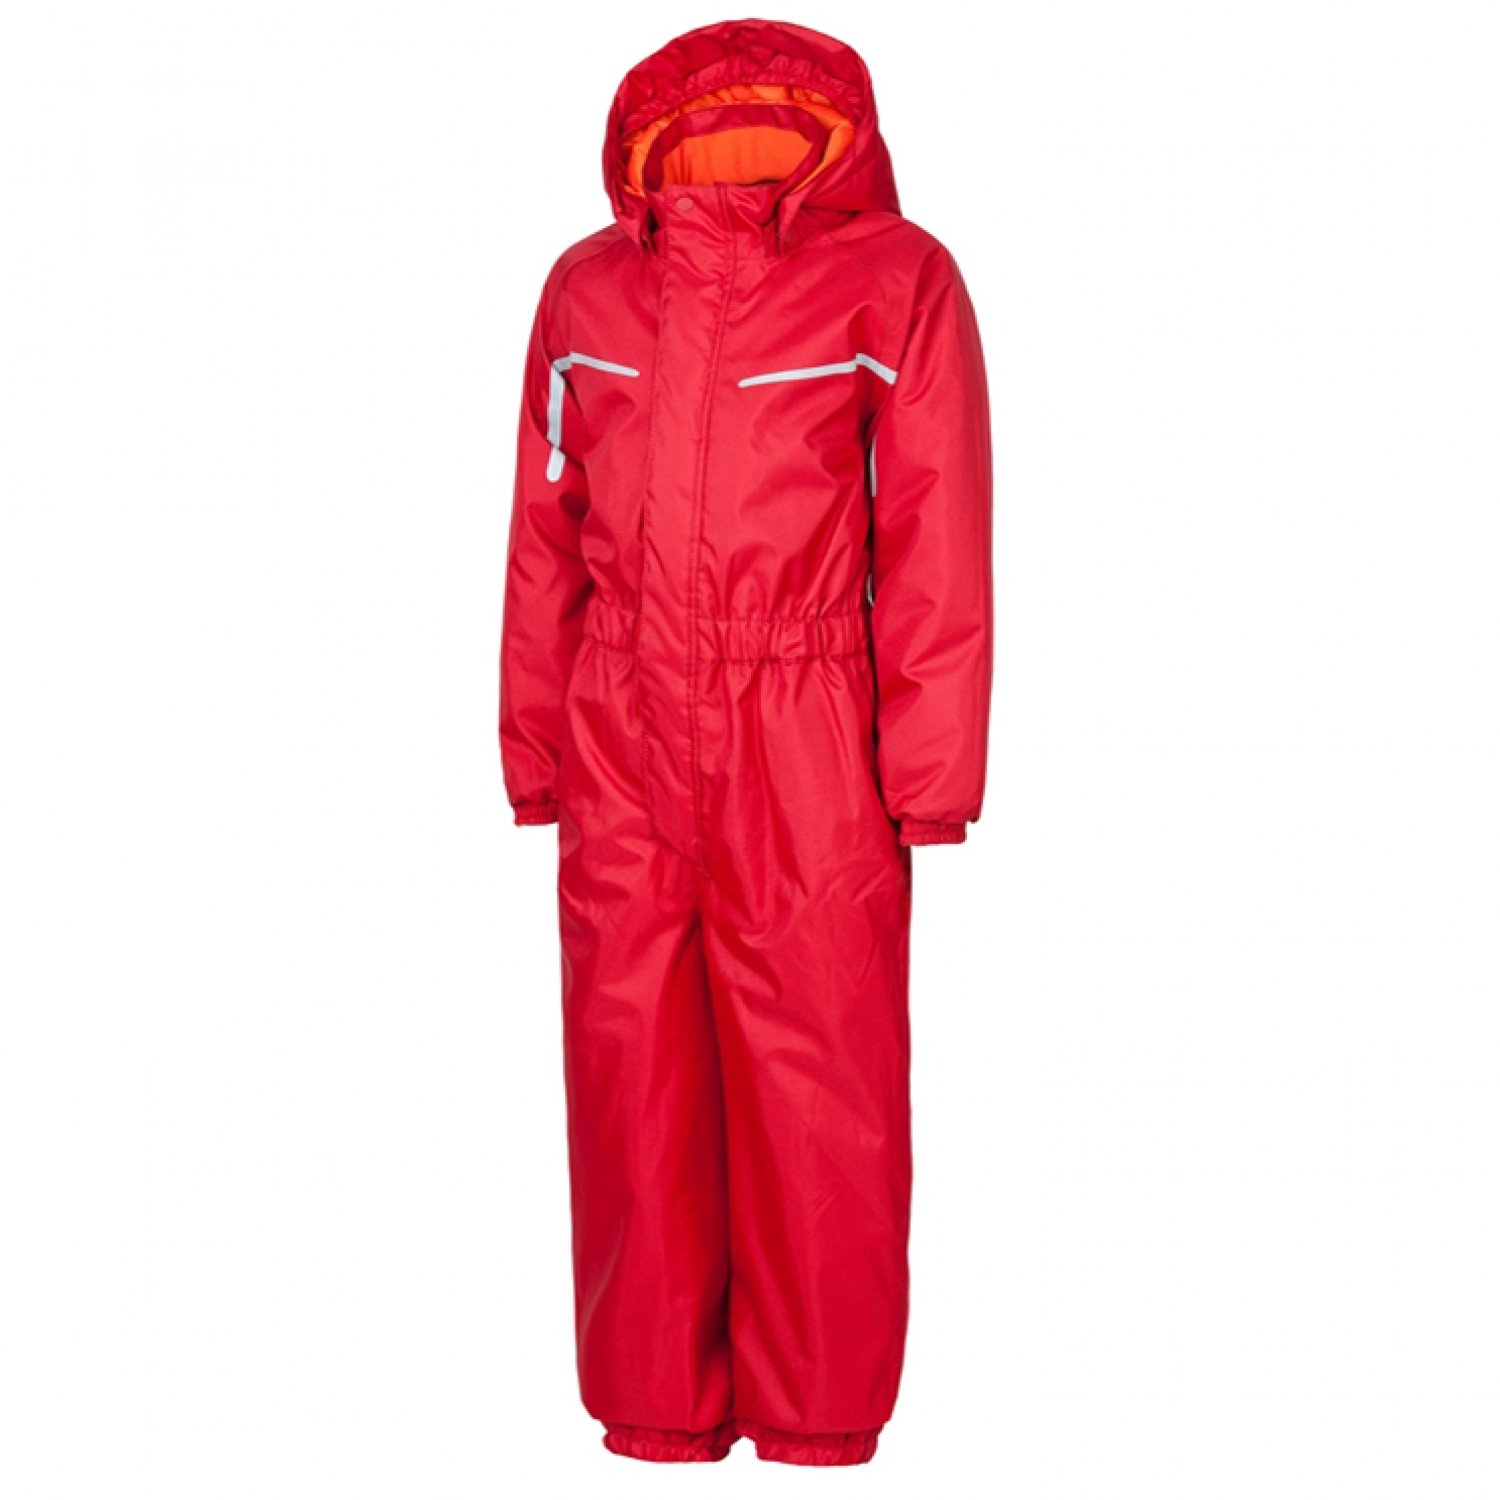 Kinder Overall Tagolo Coverall jetzt kaufen